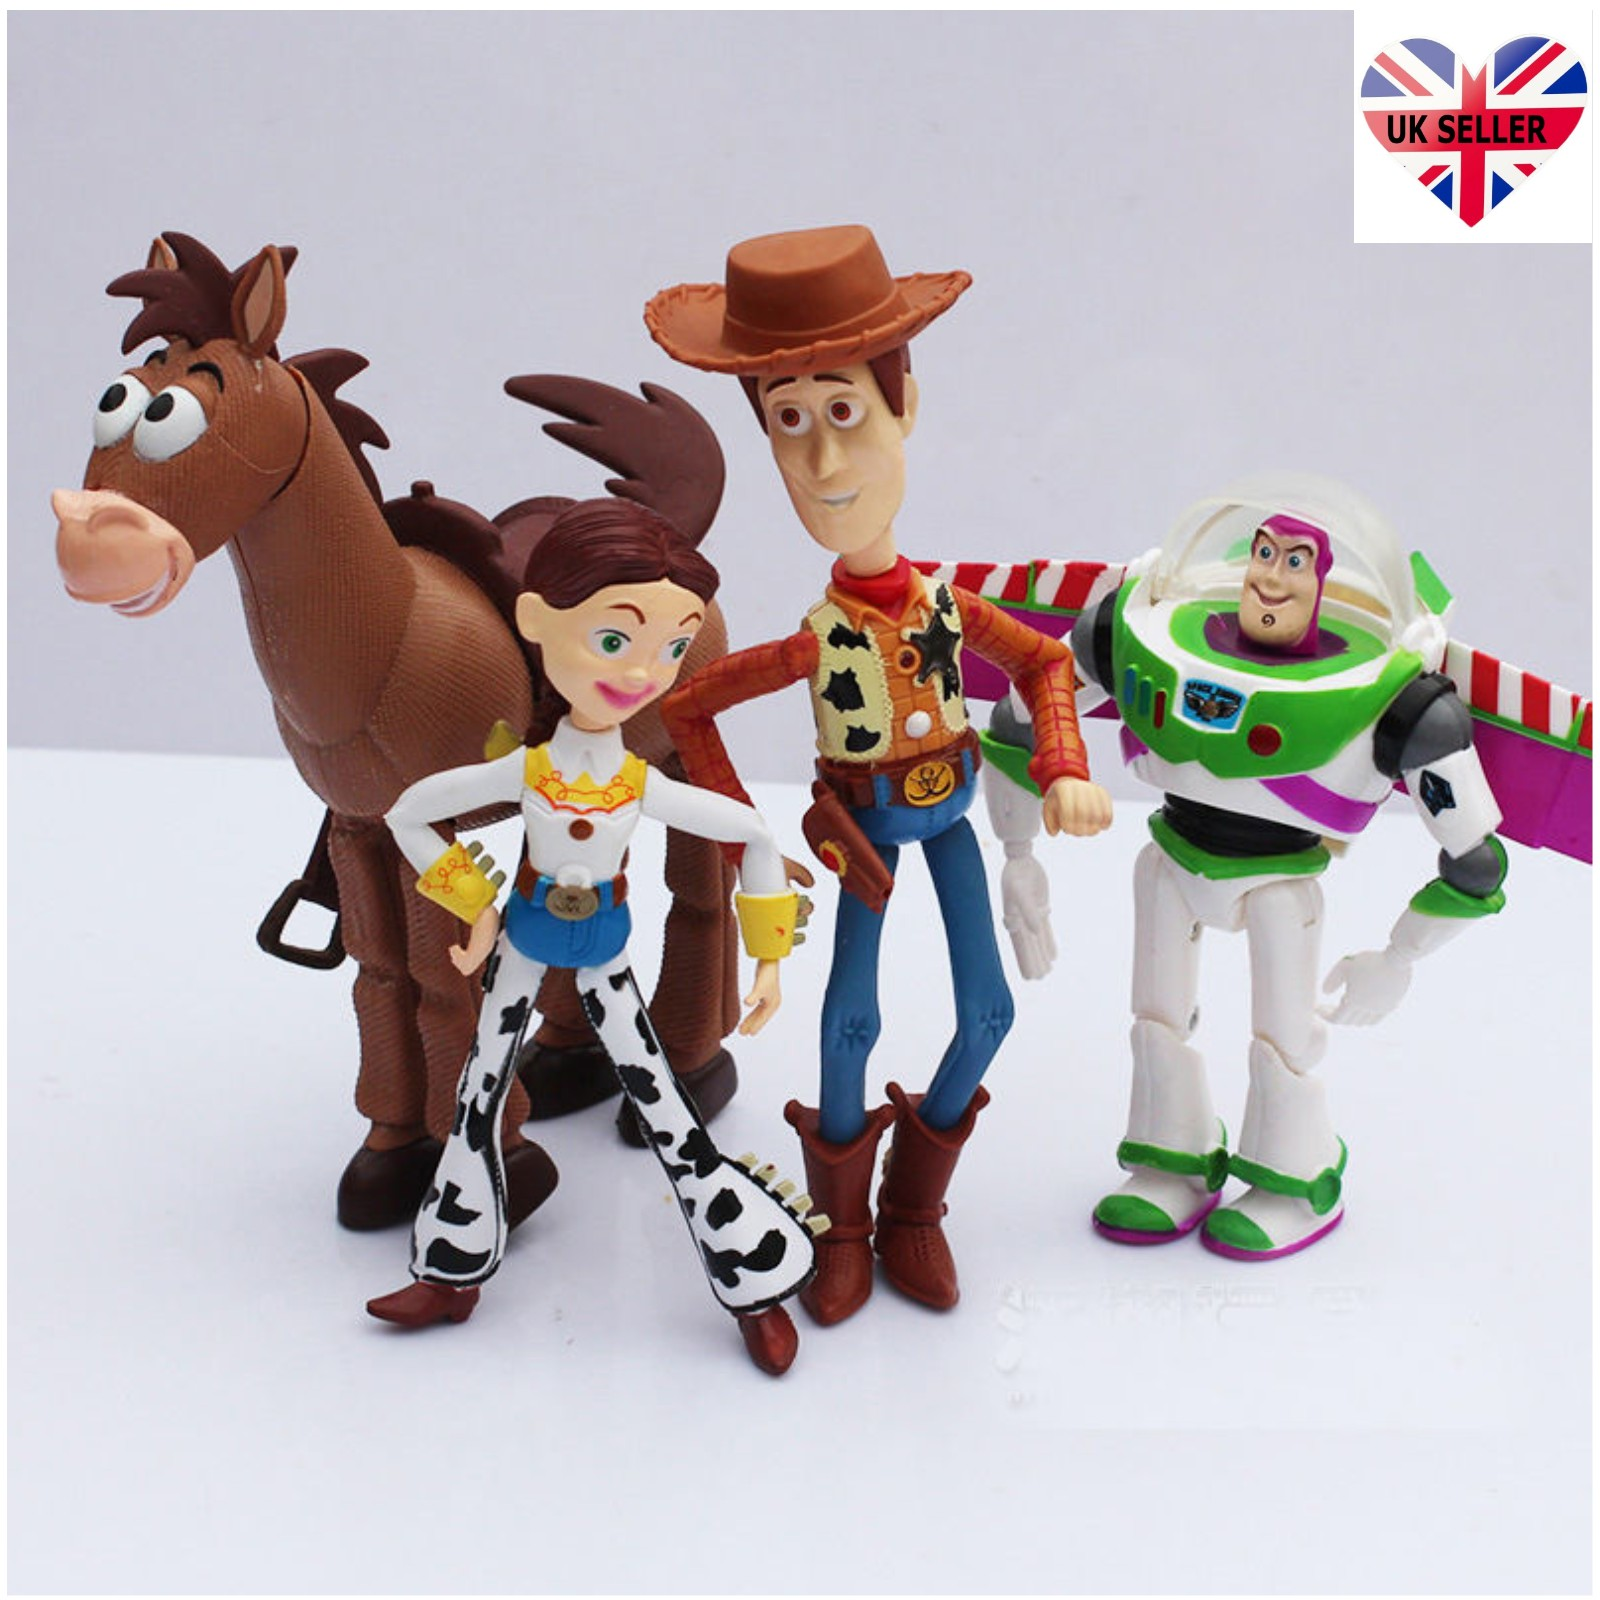 87efe8b69cd50 Toy story woody buzz lightyear jessie figure toys collection for kid xmas  jpg 1600x1600 Toy story